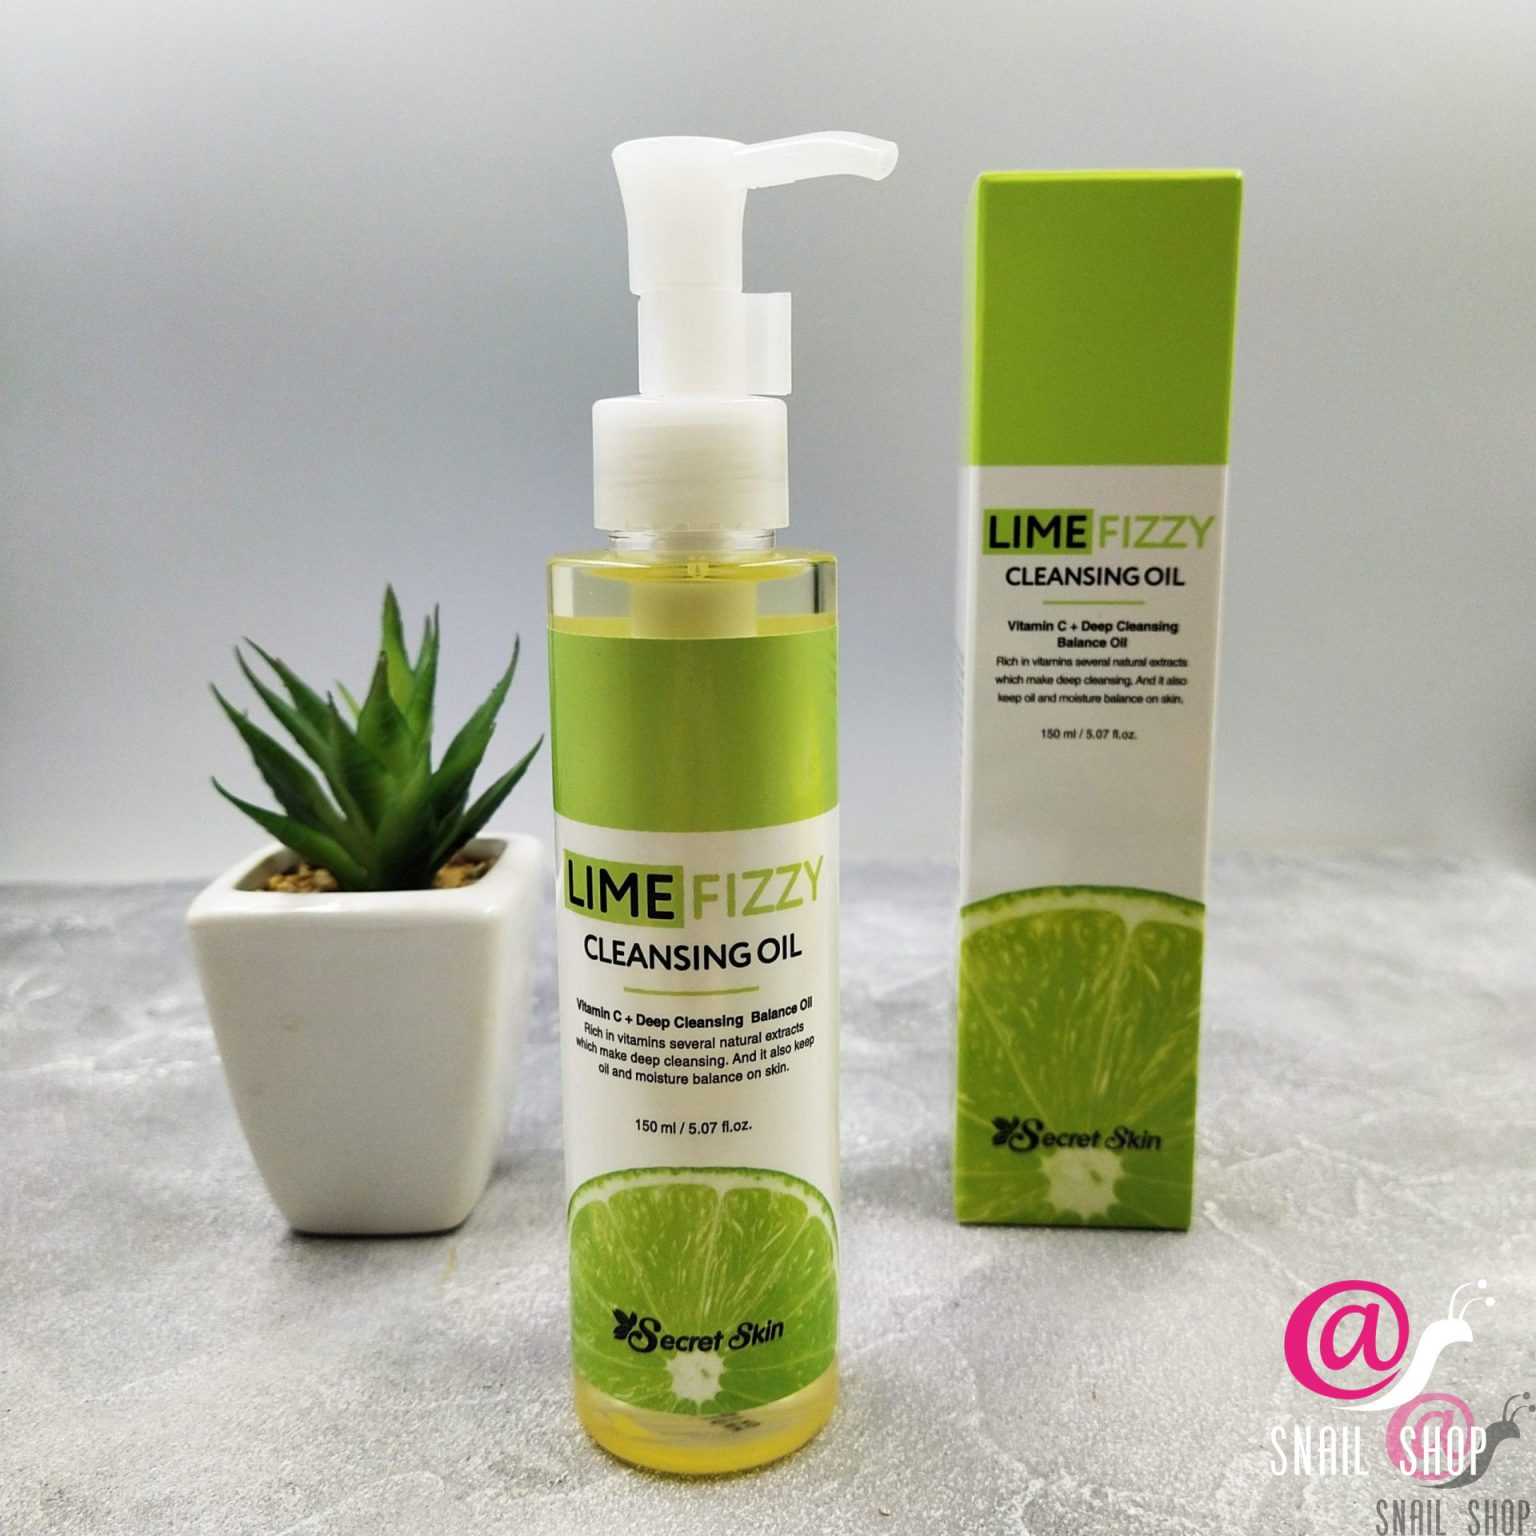 SS LIME FIZZY Гидрофильное масло SECRETSKIN LIME FIZZY CLEANSING OIL 150мл